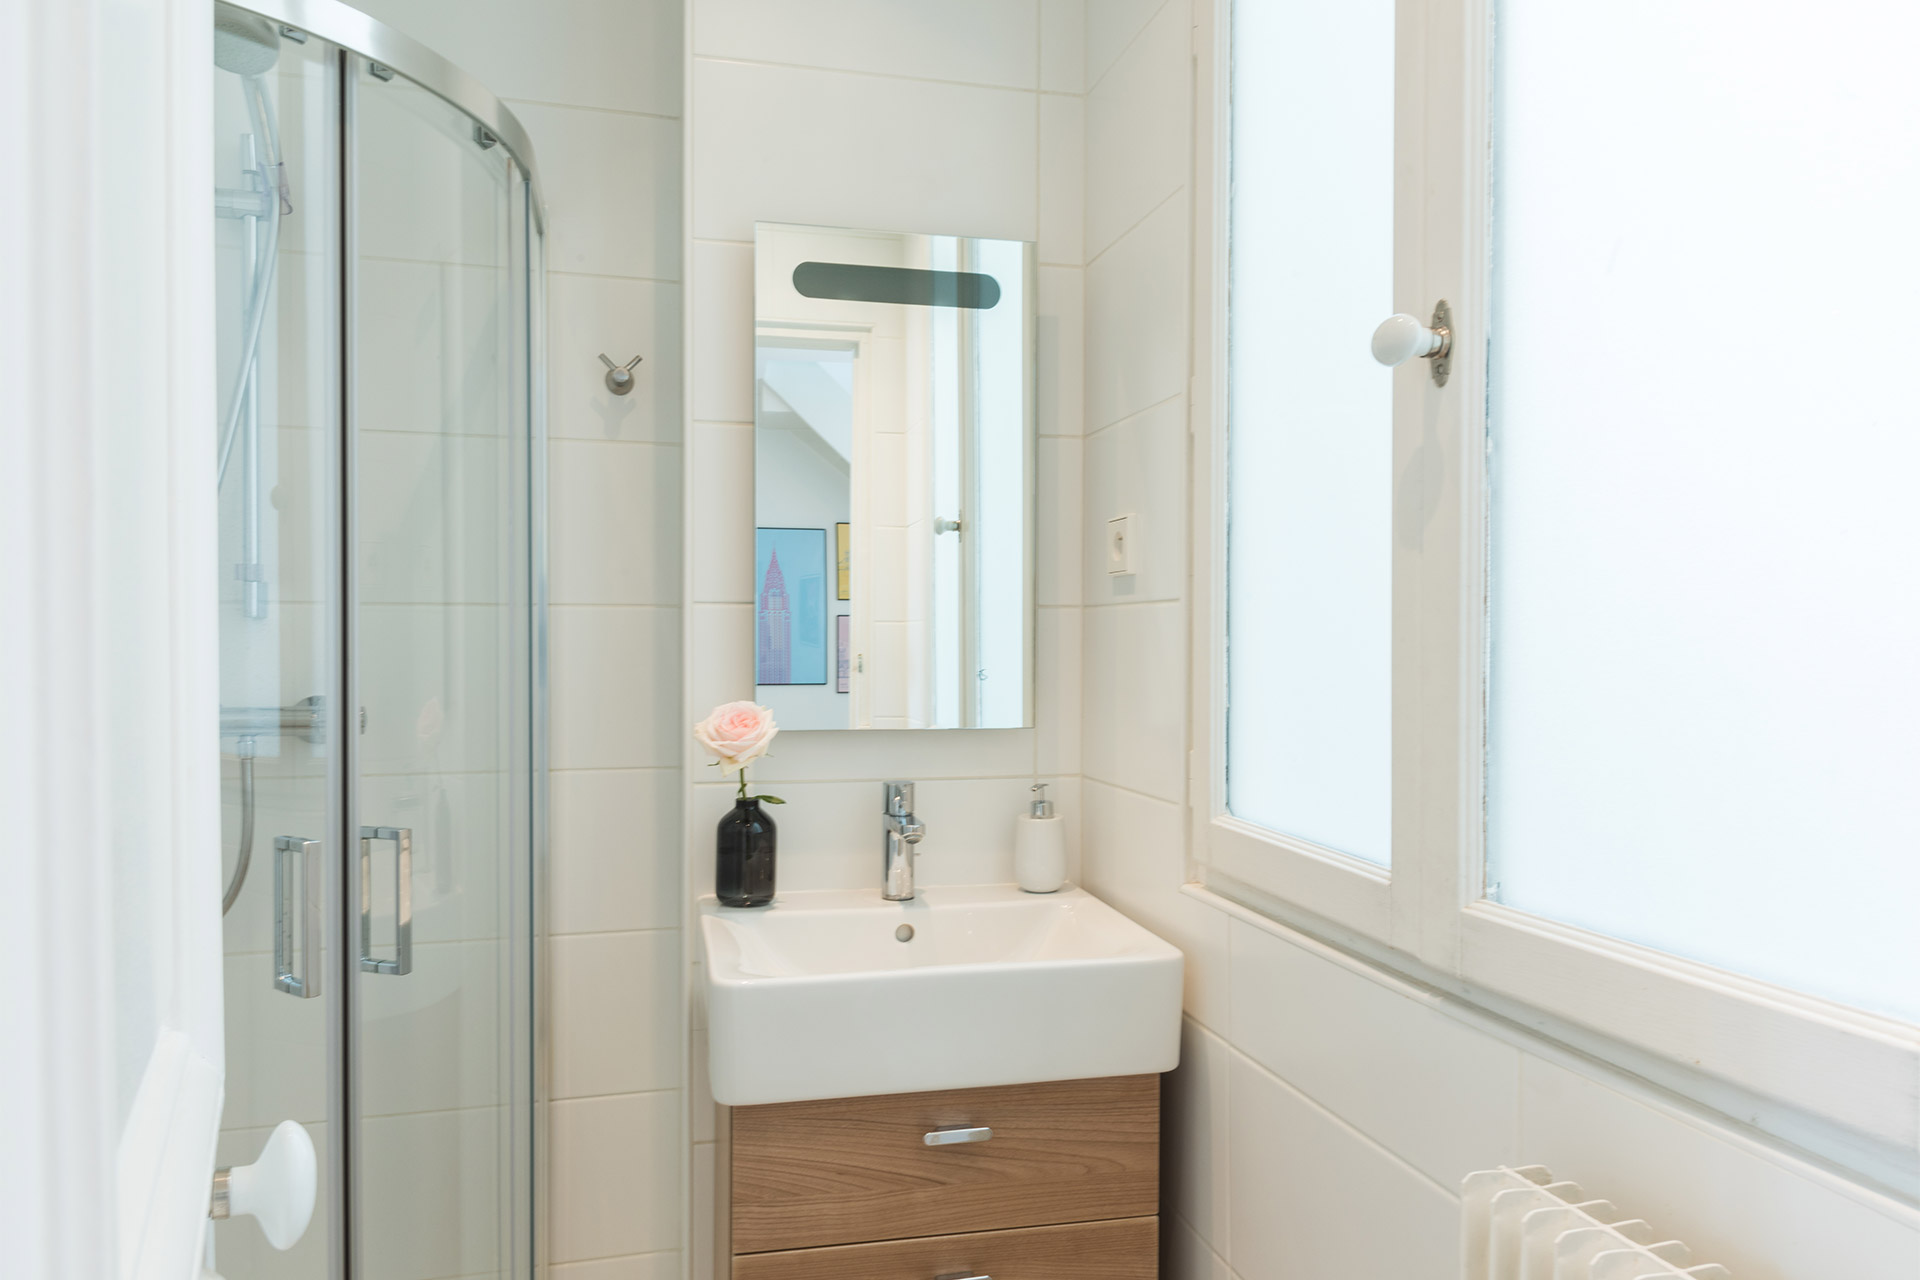 Downstairs bathroom of the Mondeuse vacation rental offered by Paris Perfect